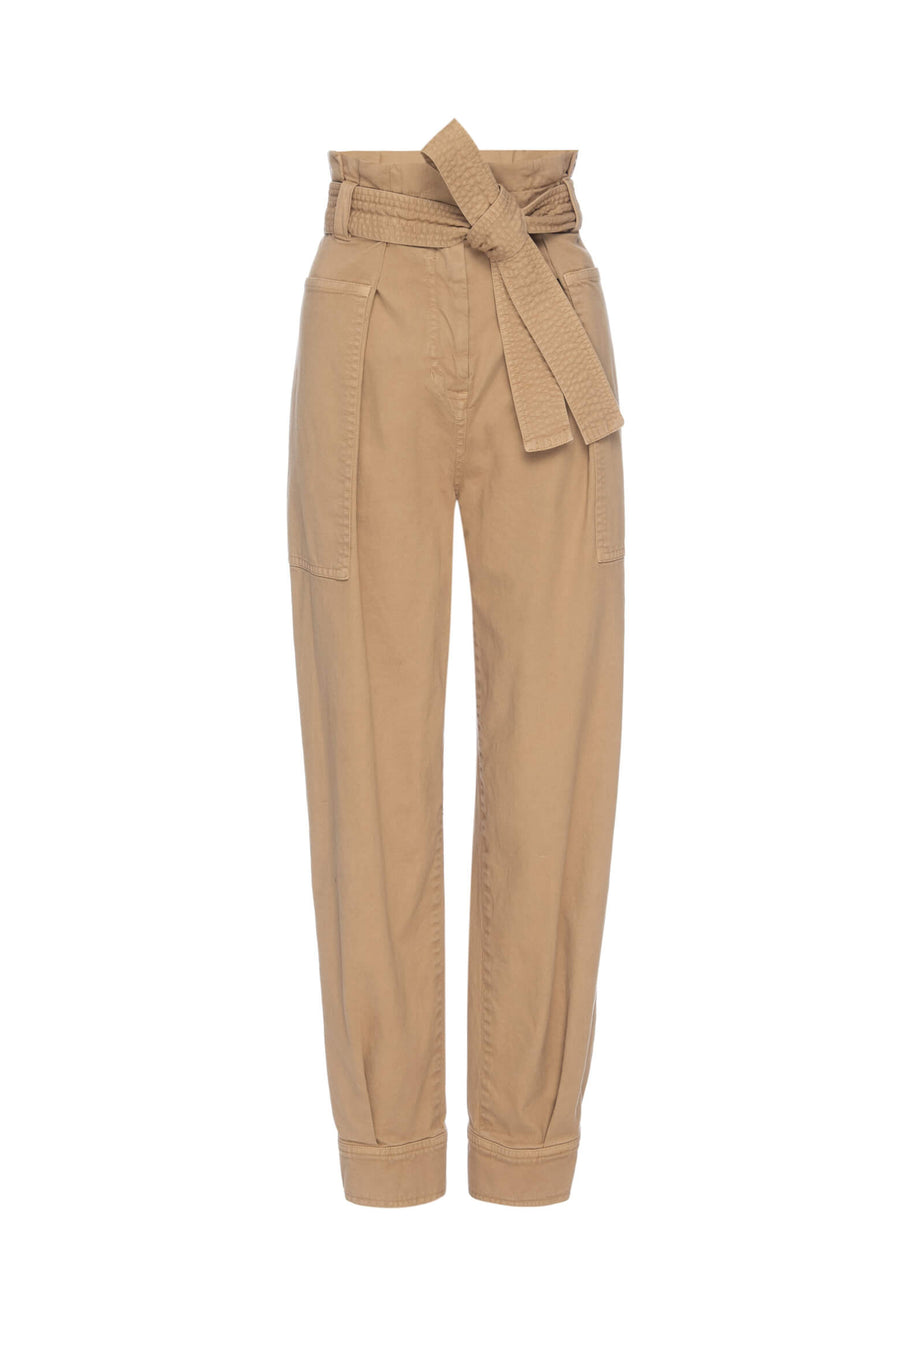 A.L.C Cobolt Pant from The New Trend